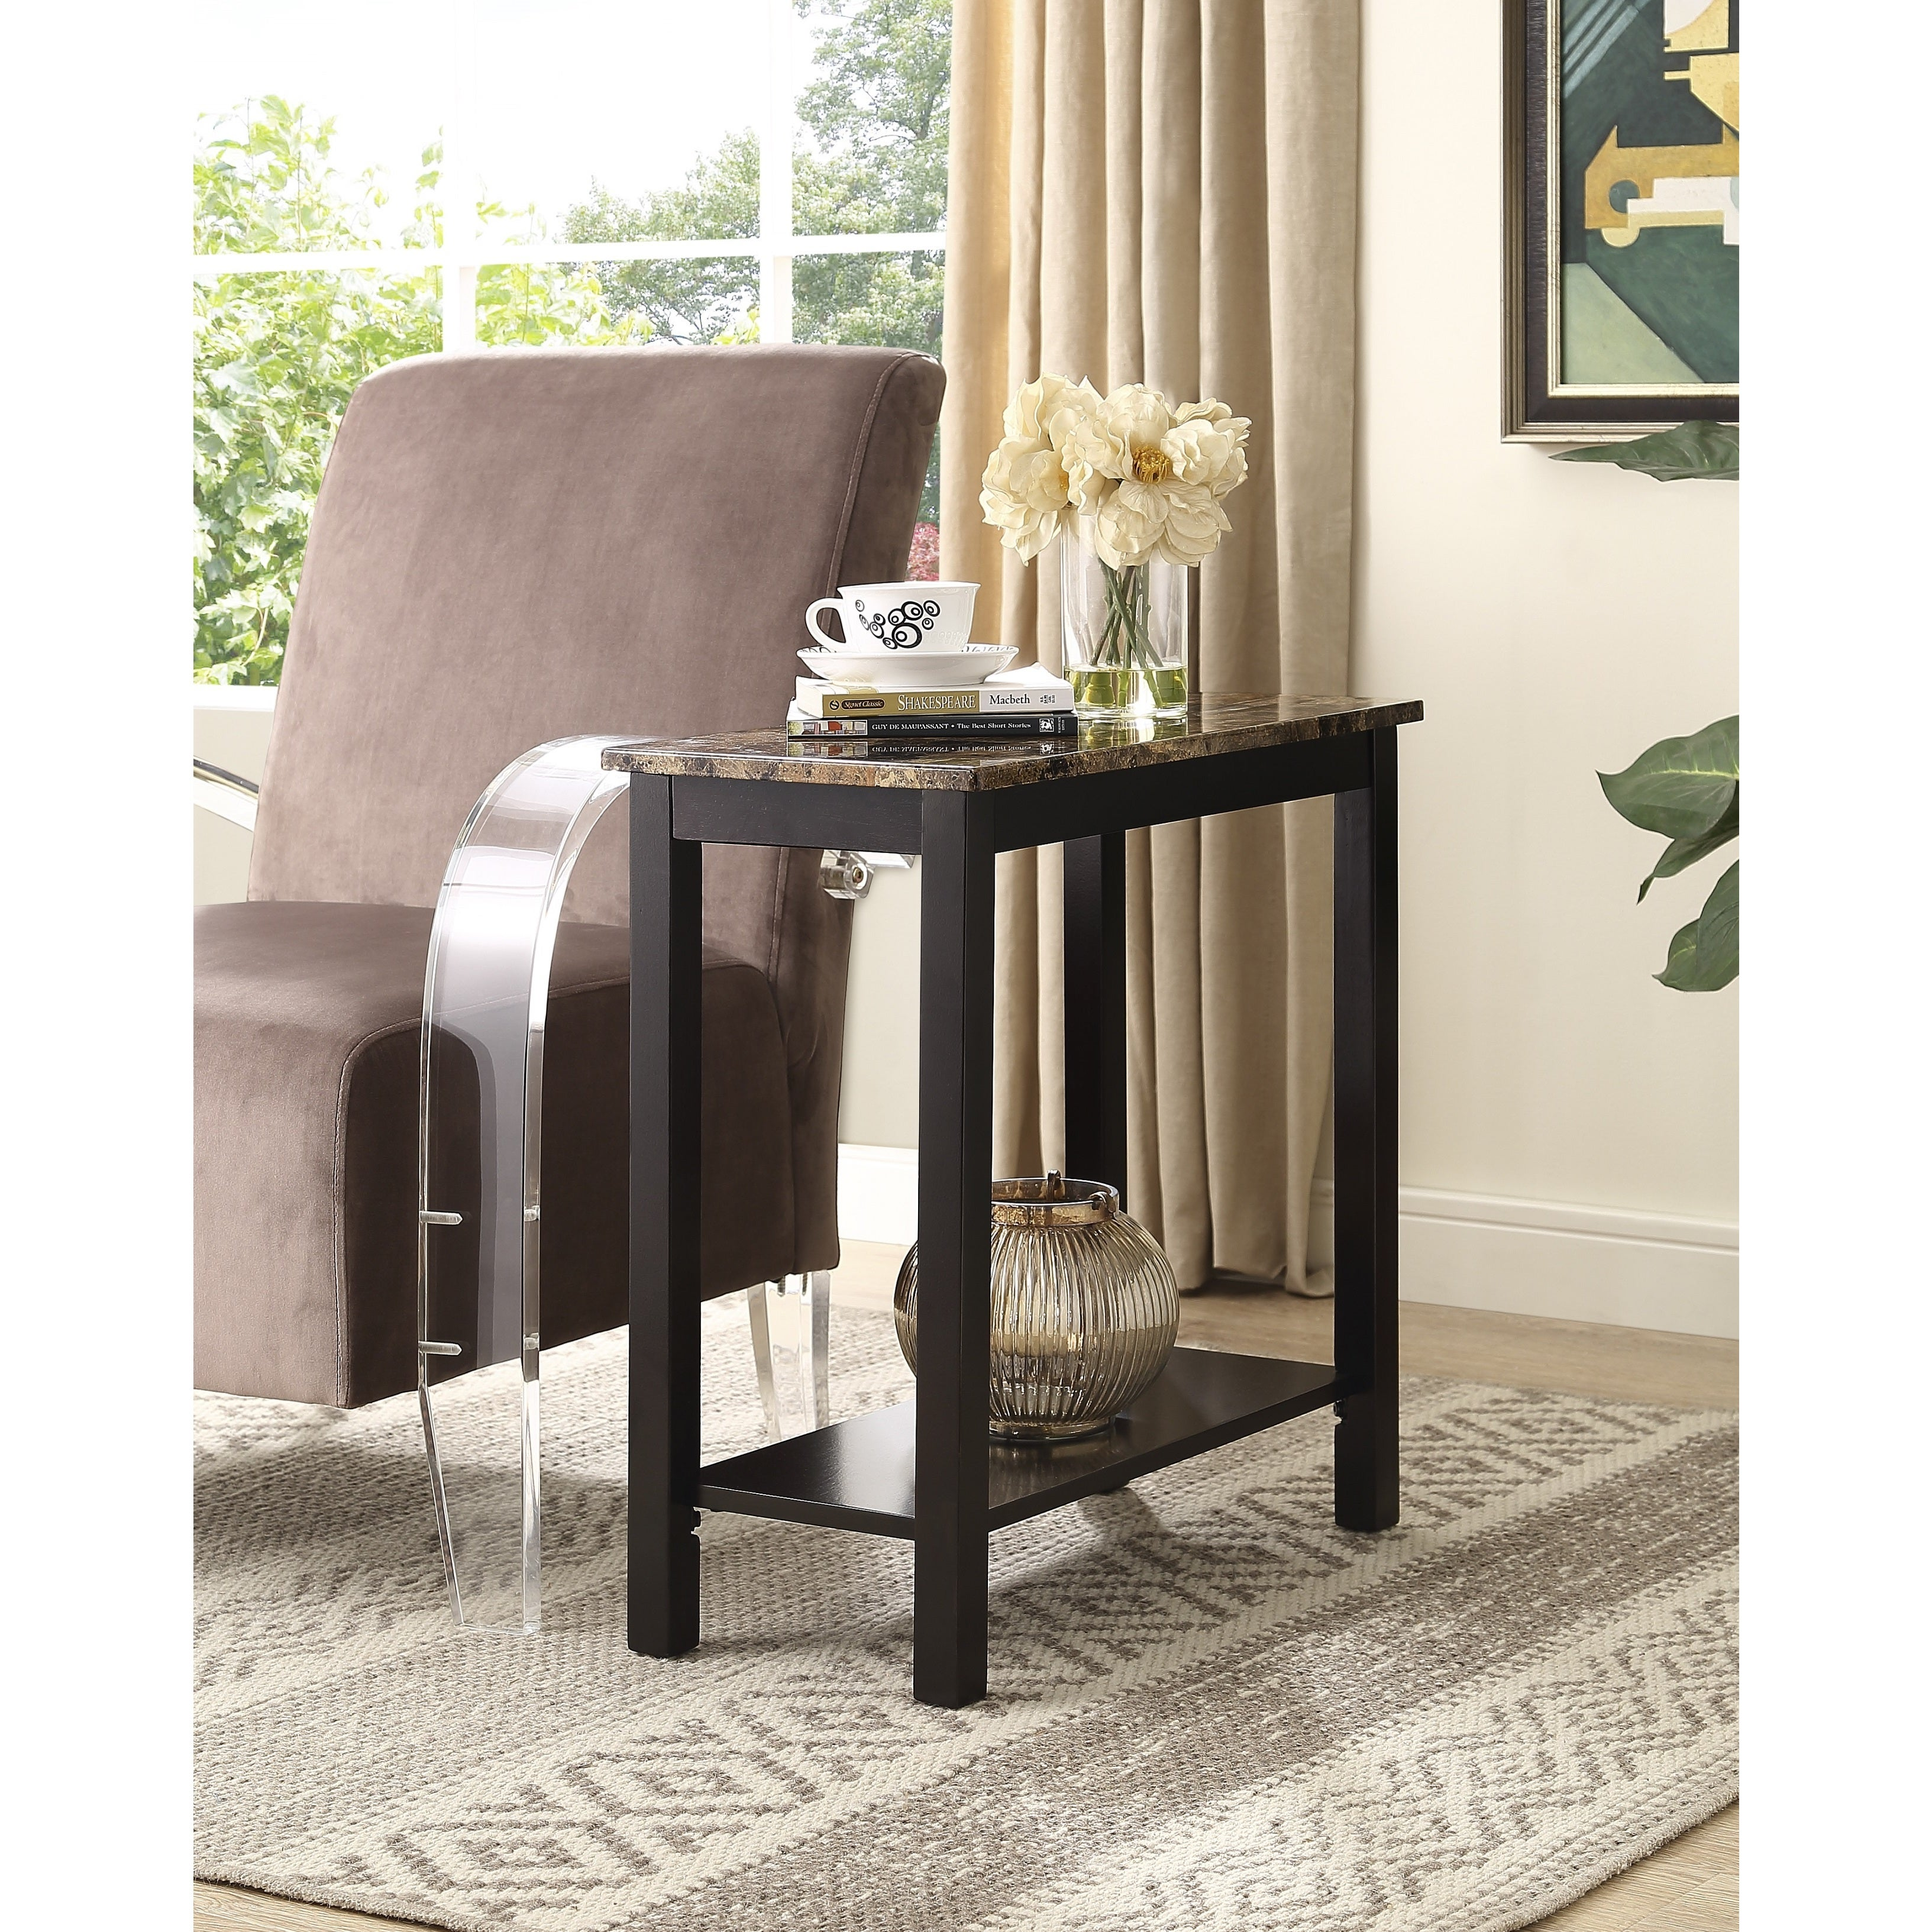 Shop lediyana espresso brown wooden faux marble side table free shipping today overstock com 15951813